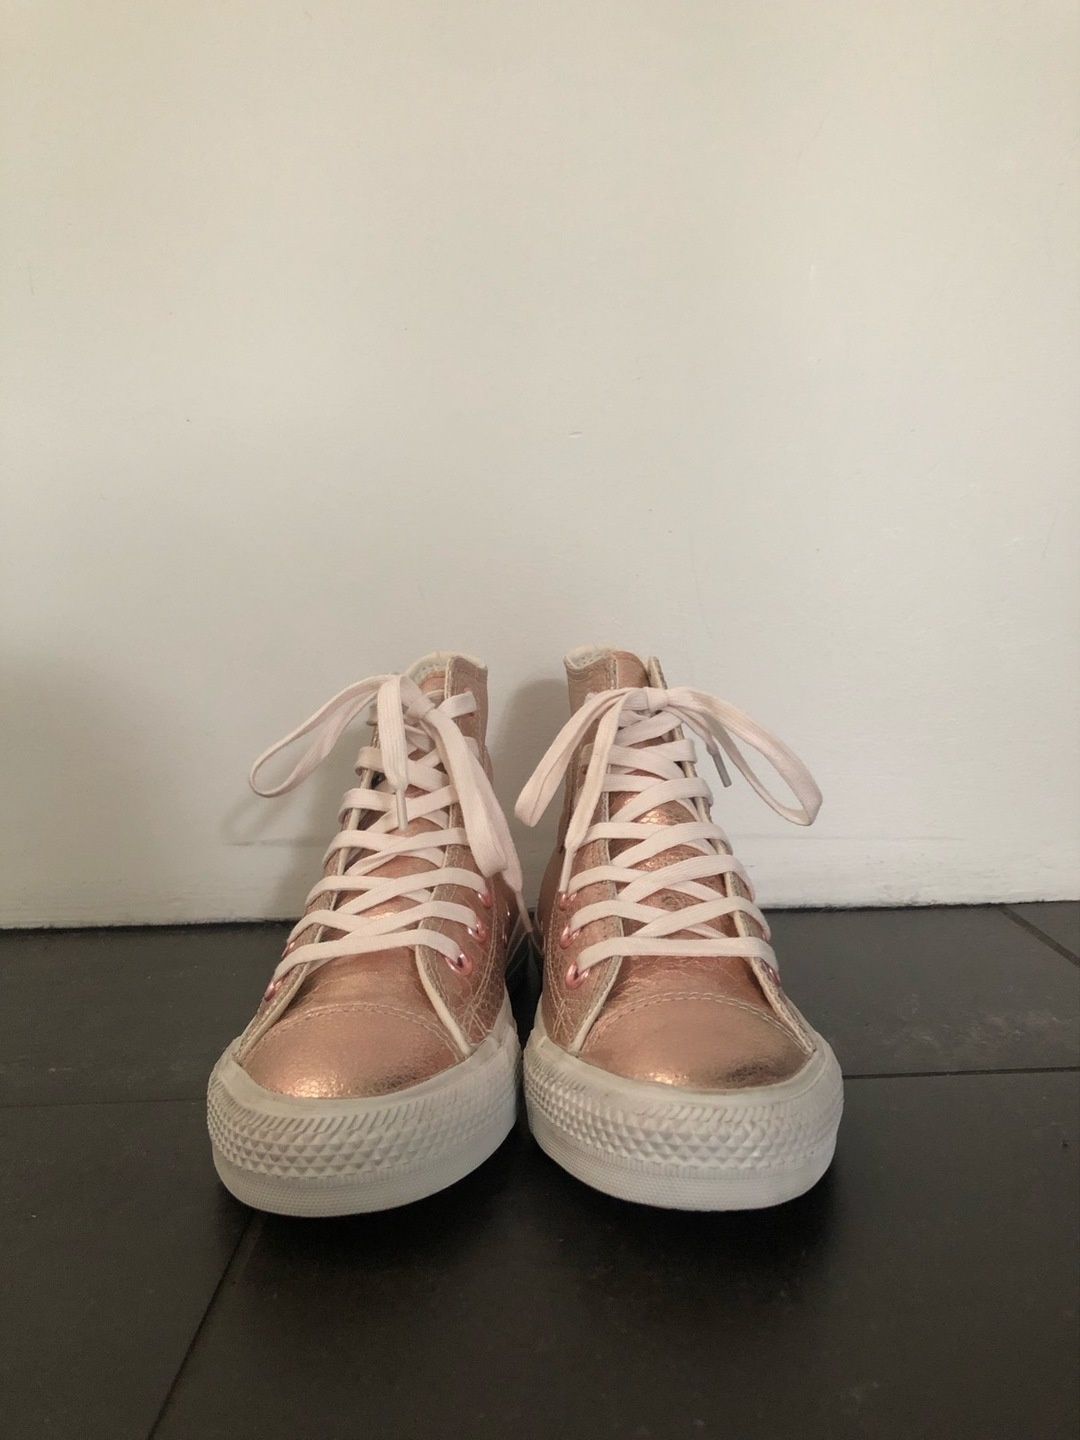 Women's sneakers - CONVERSE photo 2